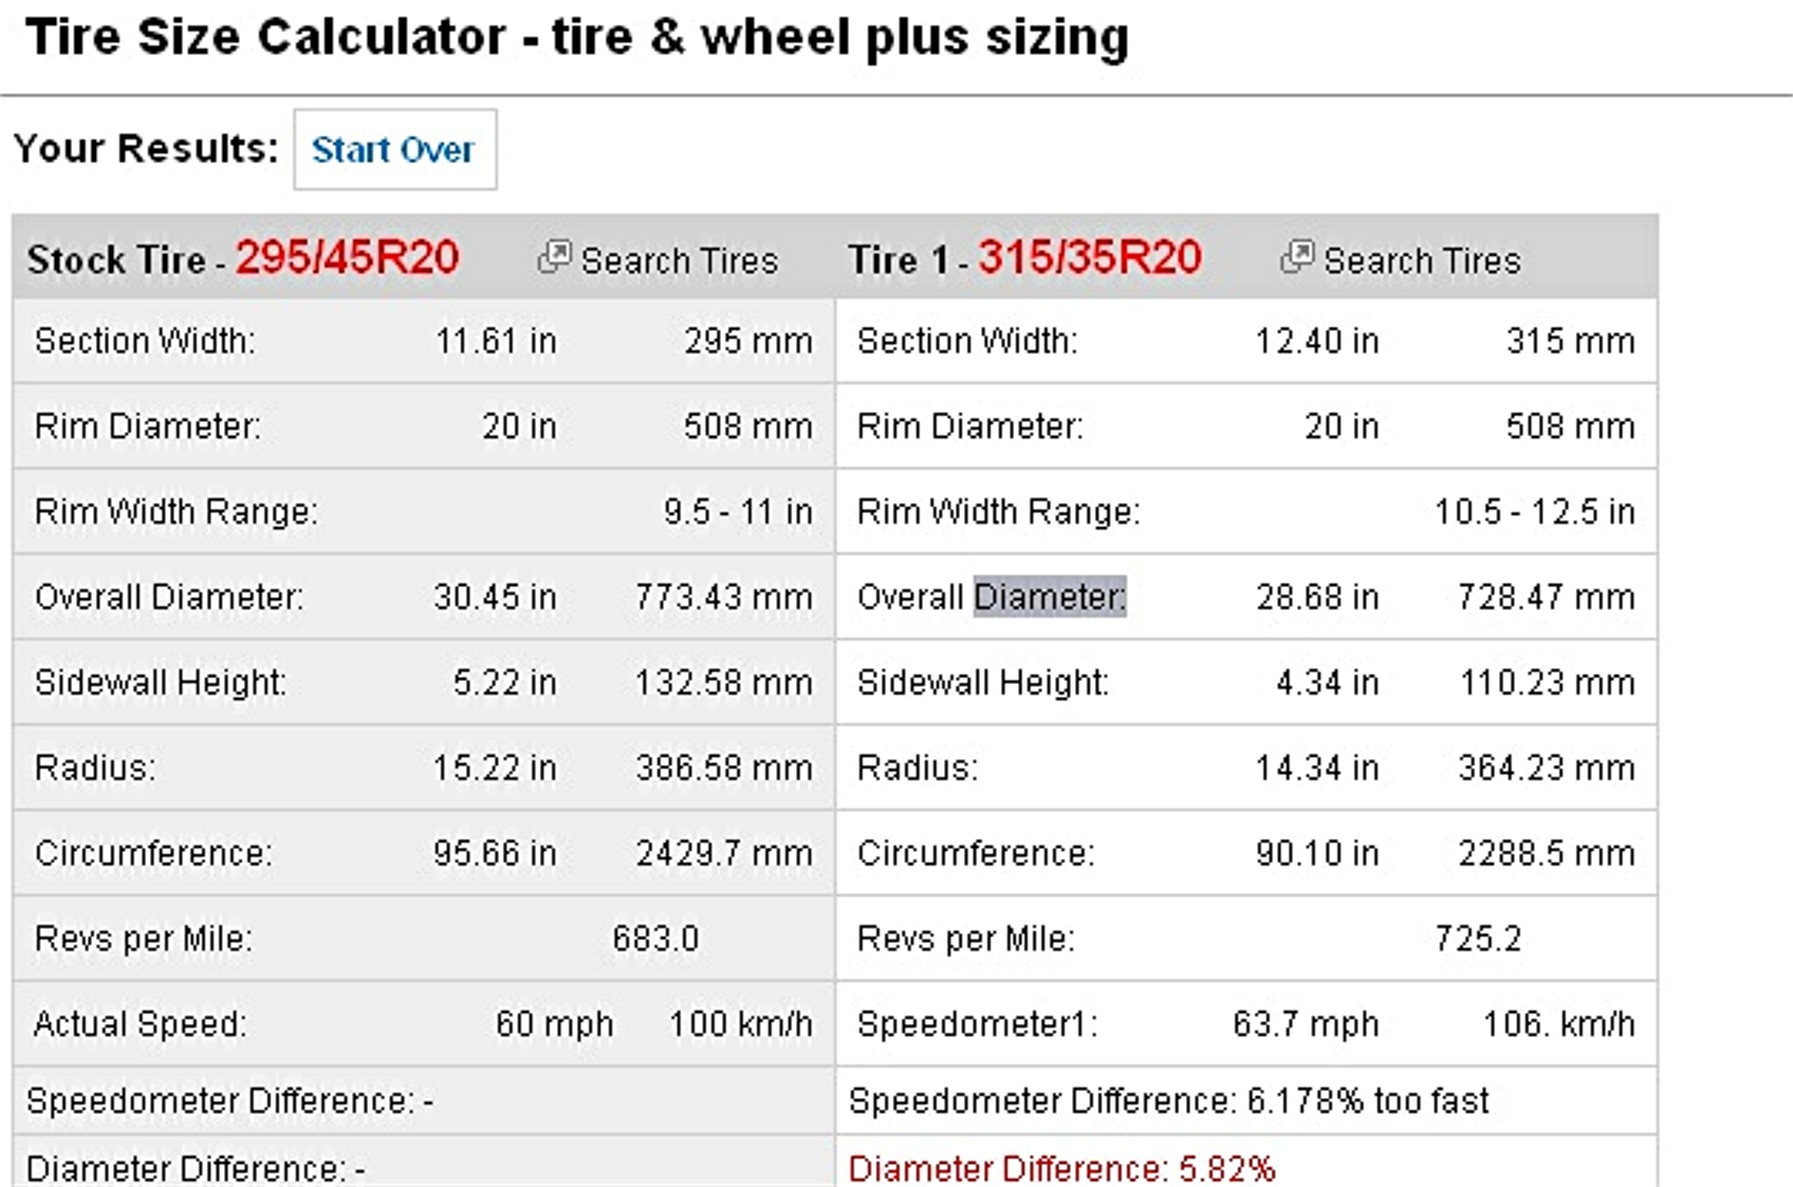 2013 Laughlin Run Tuning-tire-size-calculator-lts.jpg